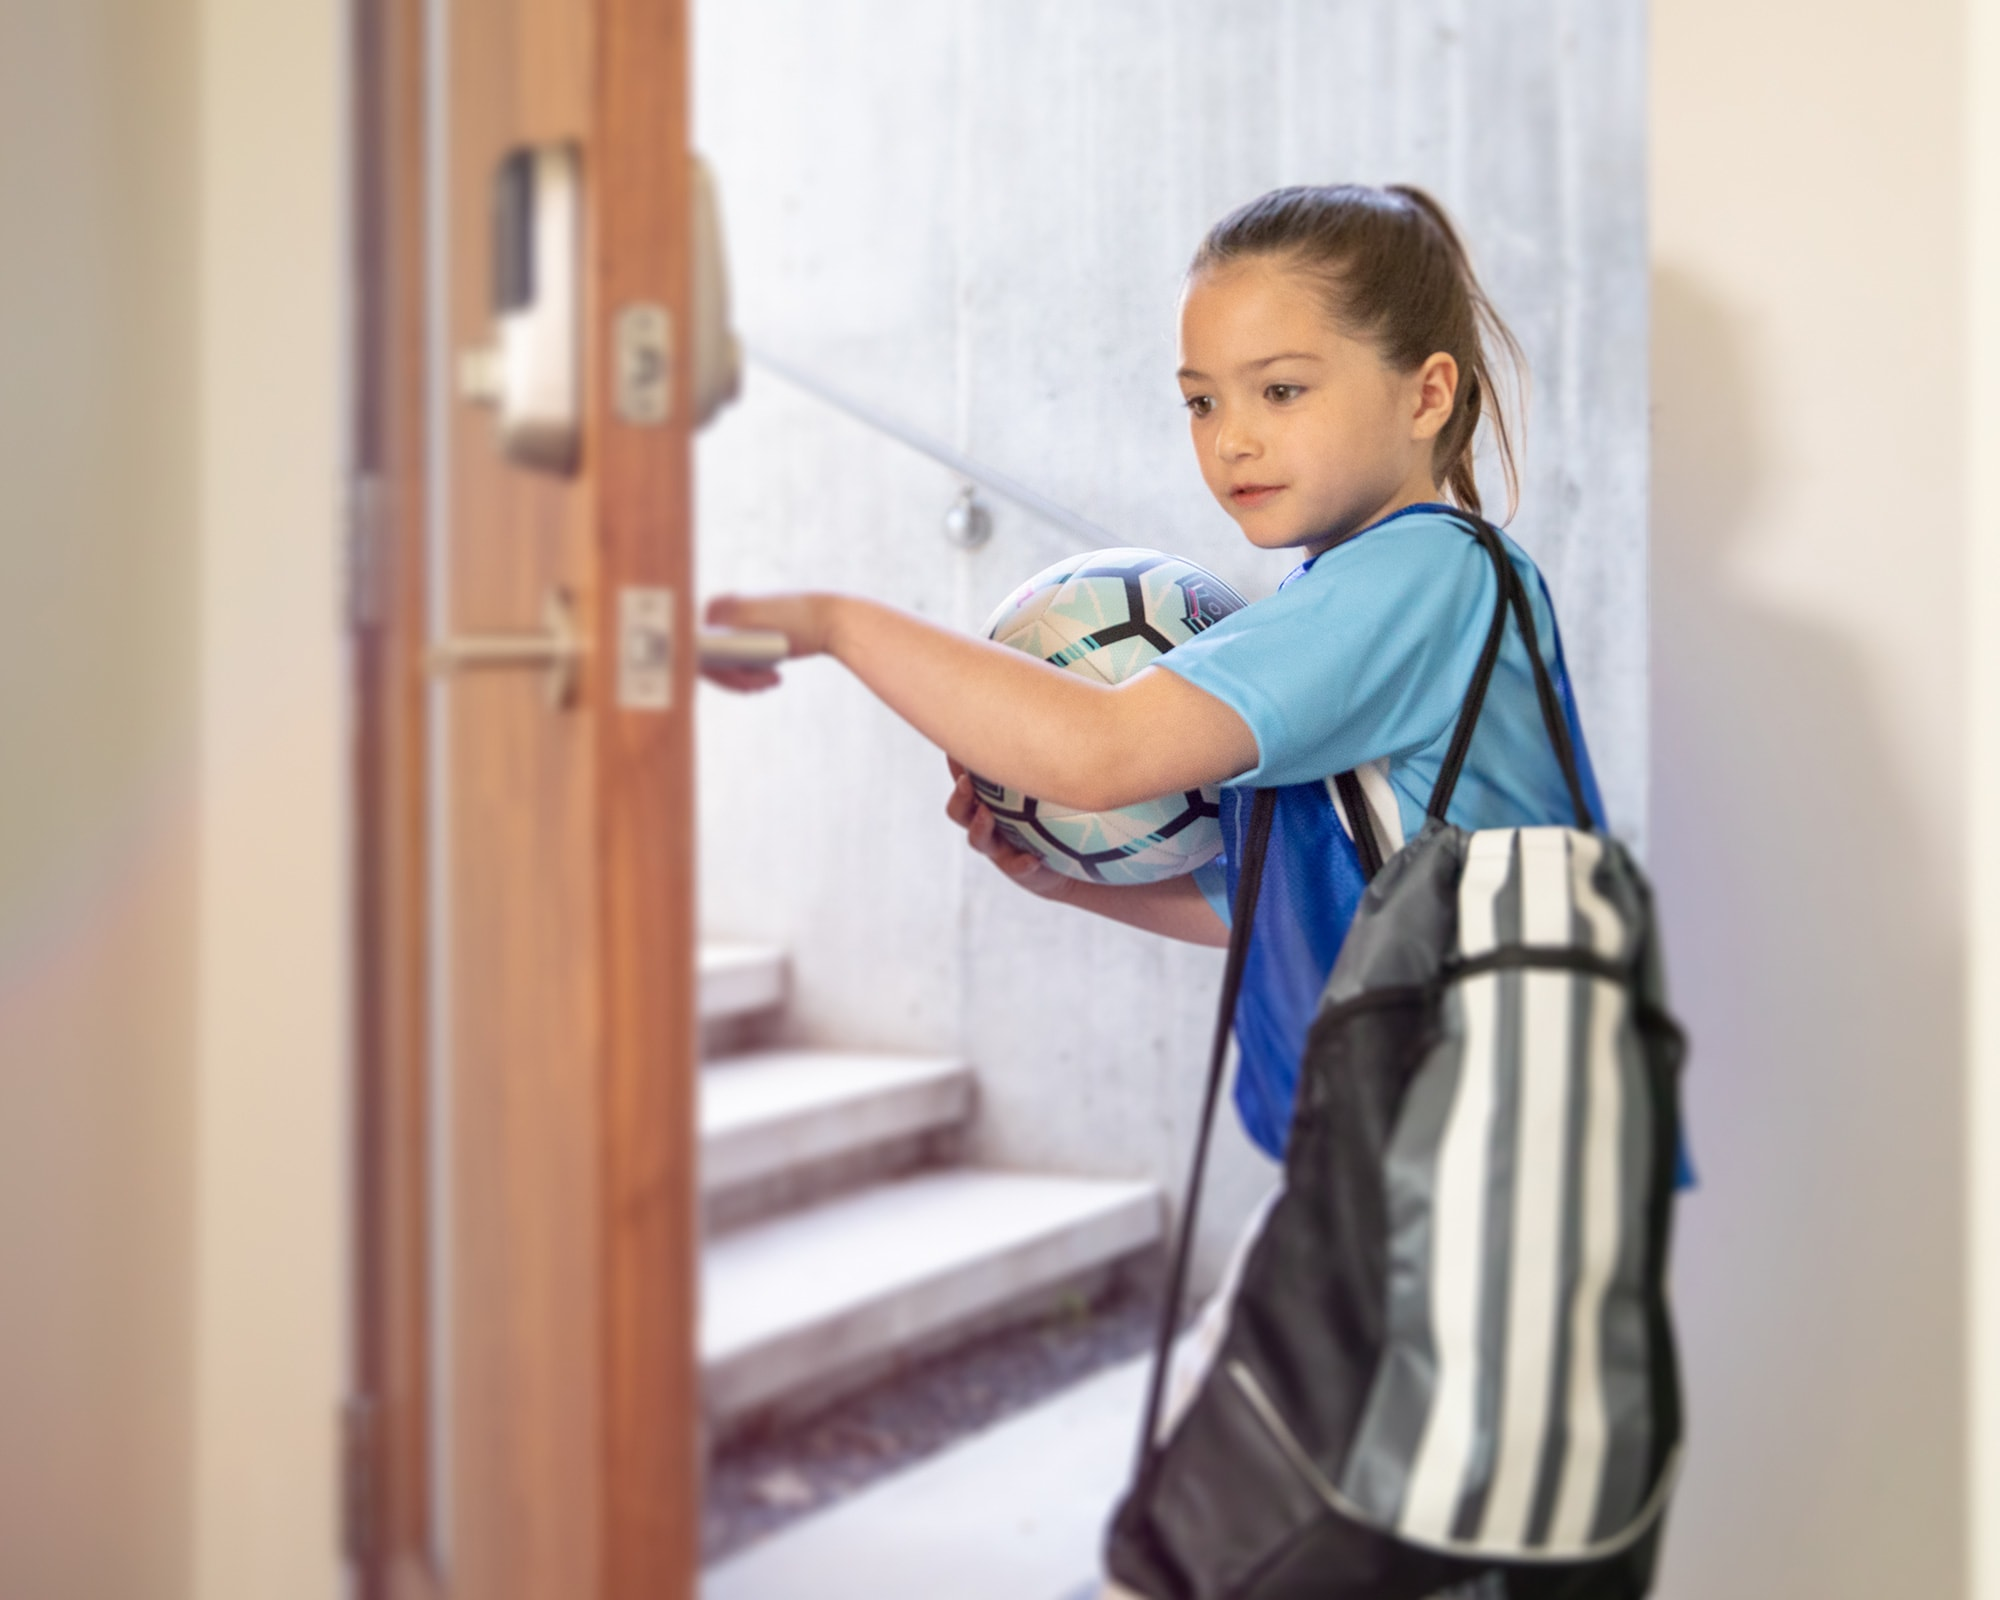 Child caring soccer ball entering home using connected smart door locks